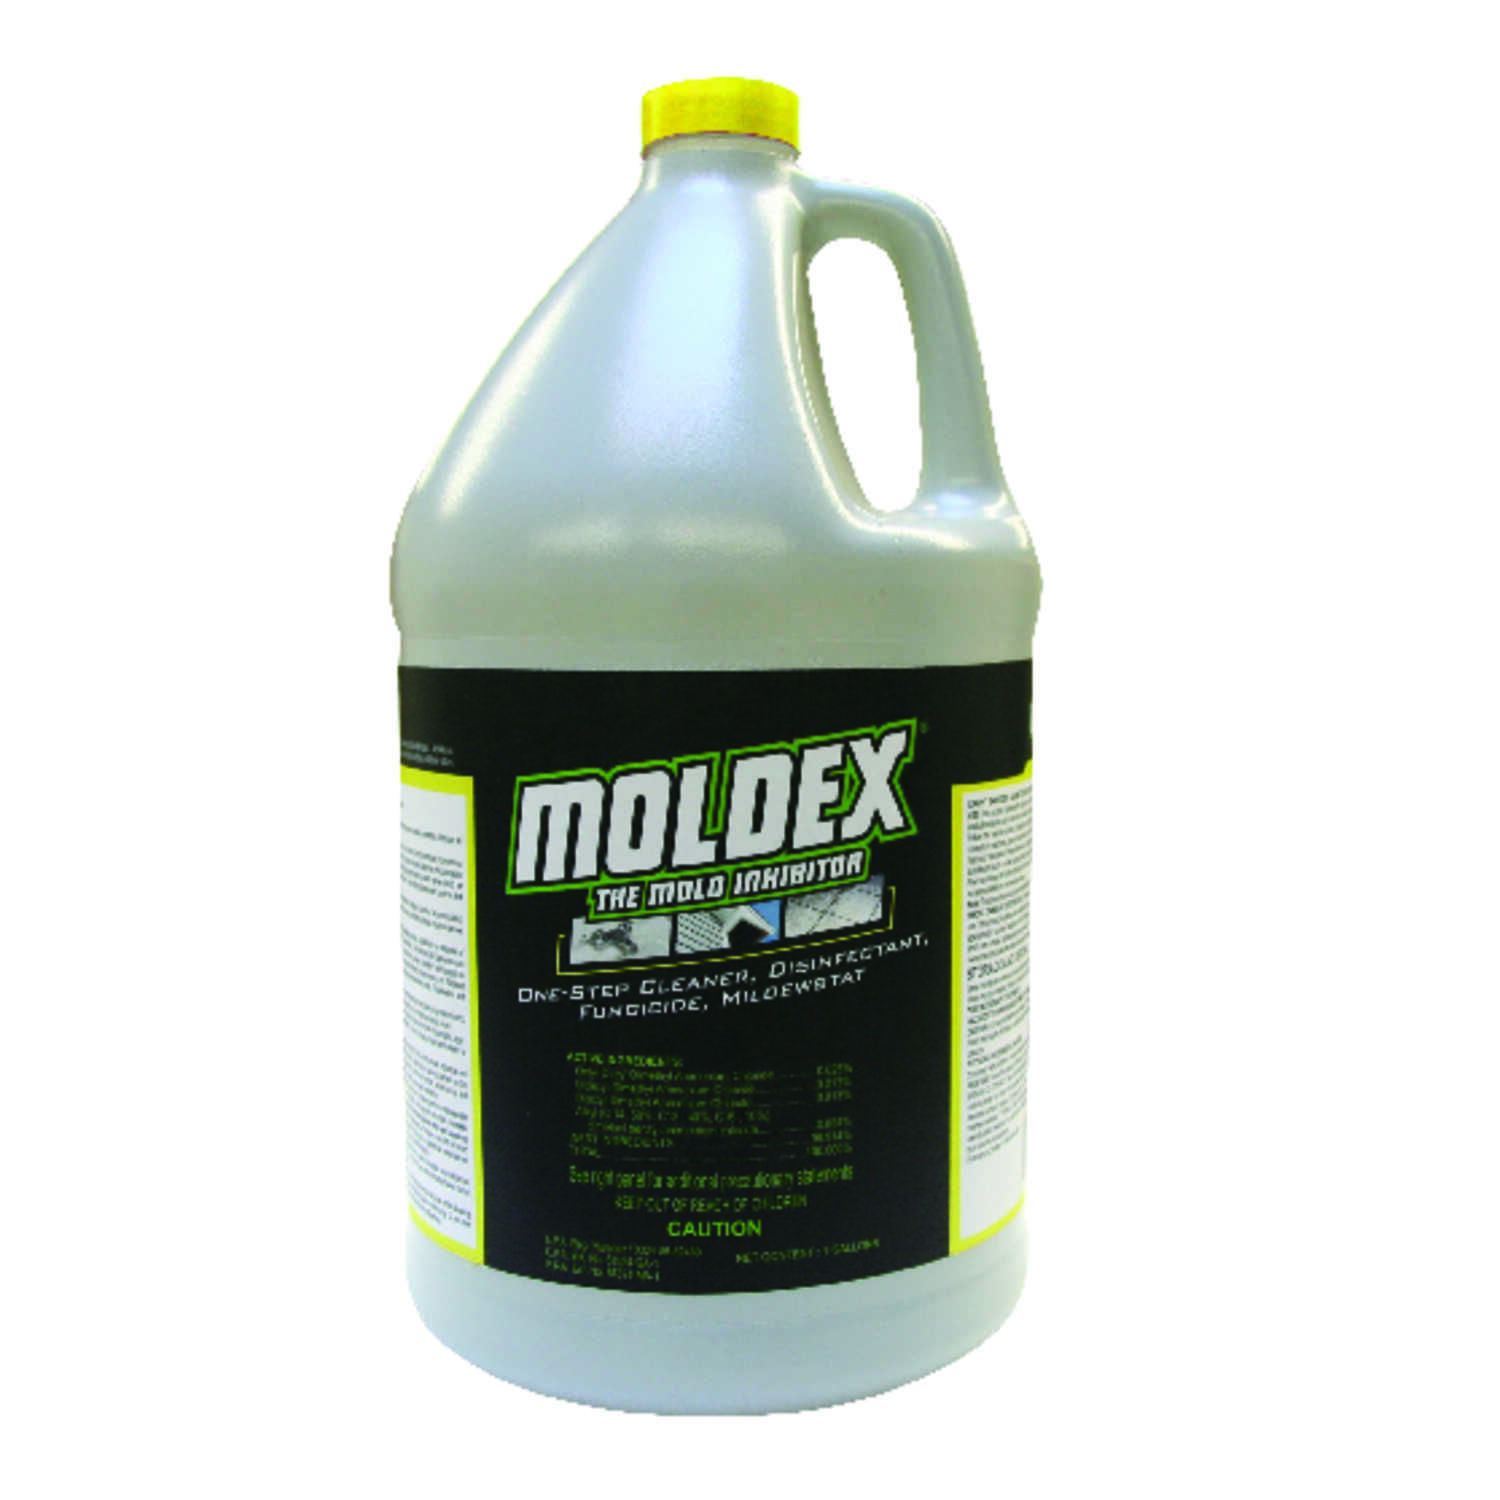 Moldex  Mold Killer  No Scent Disinfectant  1 gal.